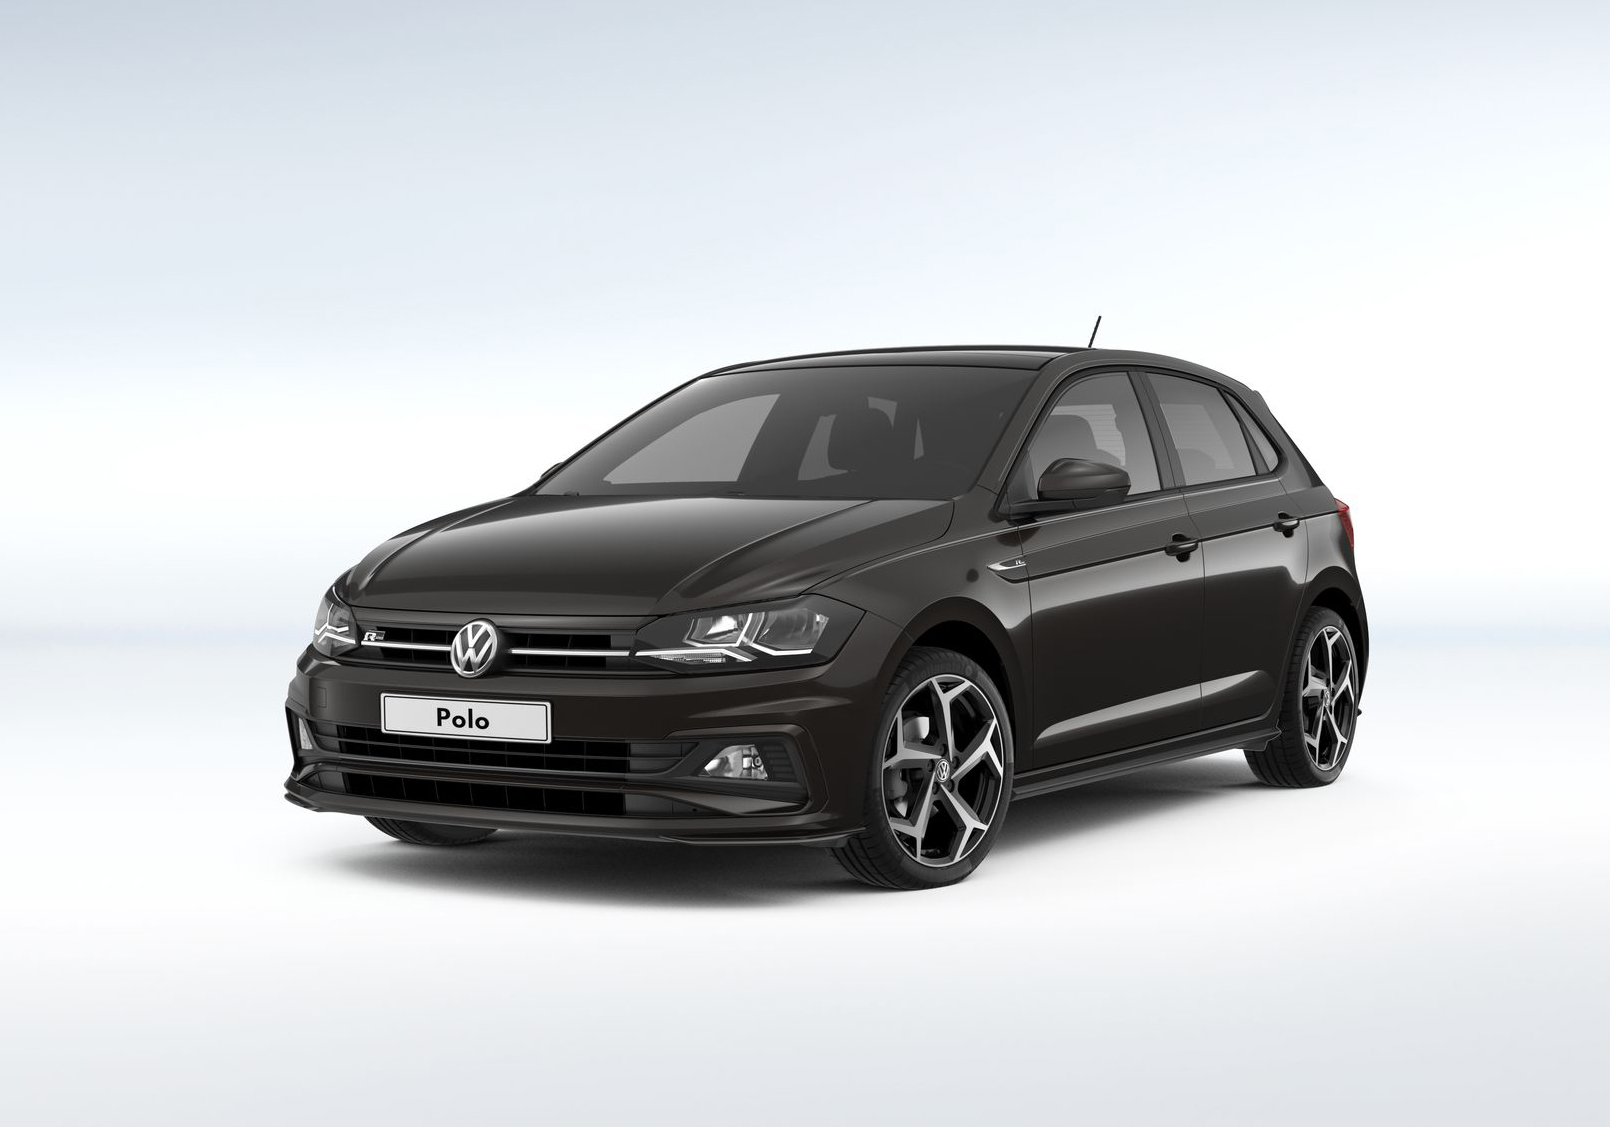 volkswagen polo r line 1 0 tsi eilander car lease gmbh. Black Bedroom Furniture Sets. Home Design Ideas